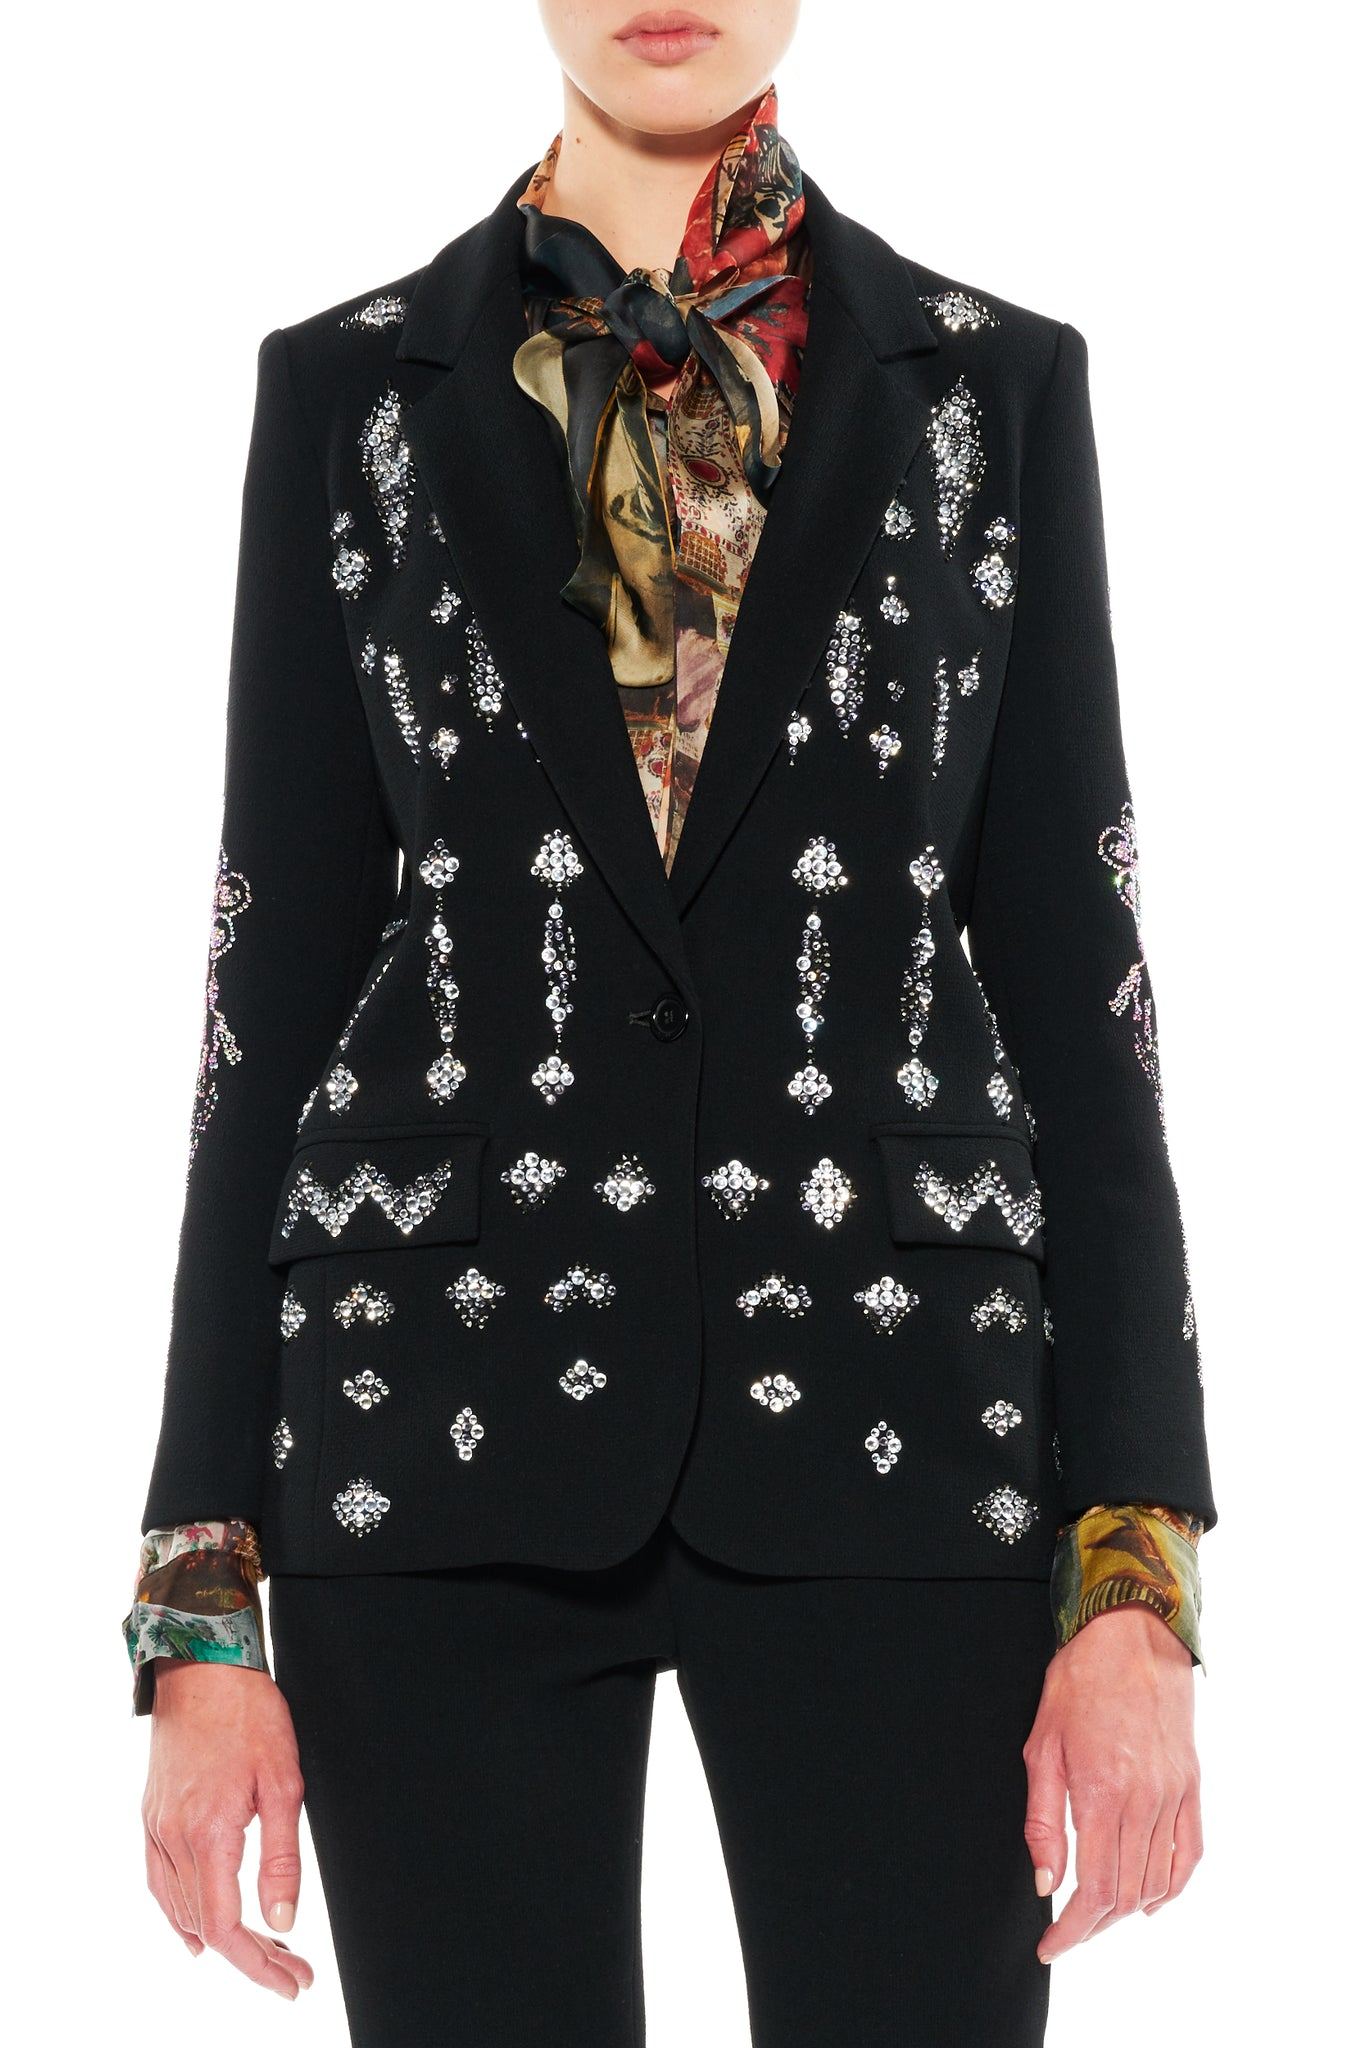 """ZIG ZAGS AND DIAMONDS"" LONG BLAZER - Women's Jackets & Coats - Libertine"